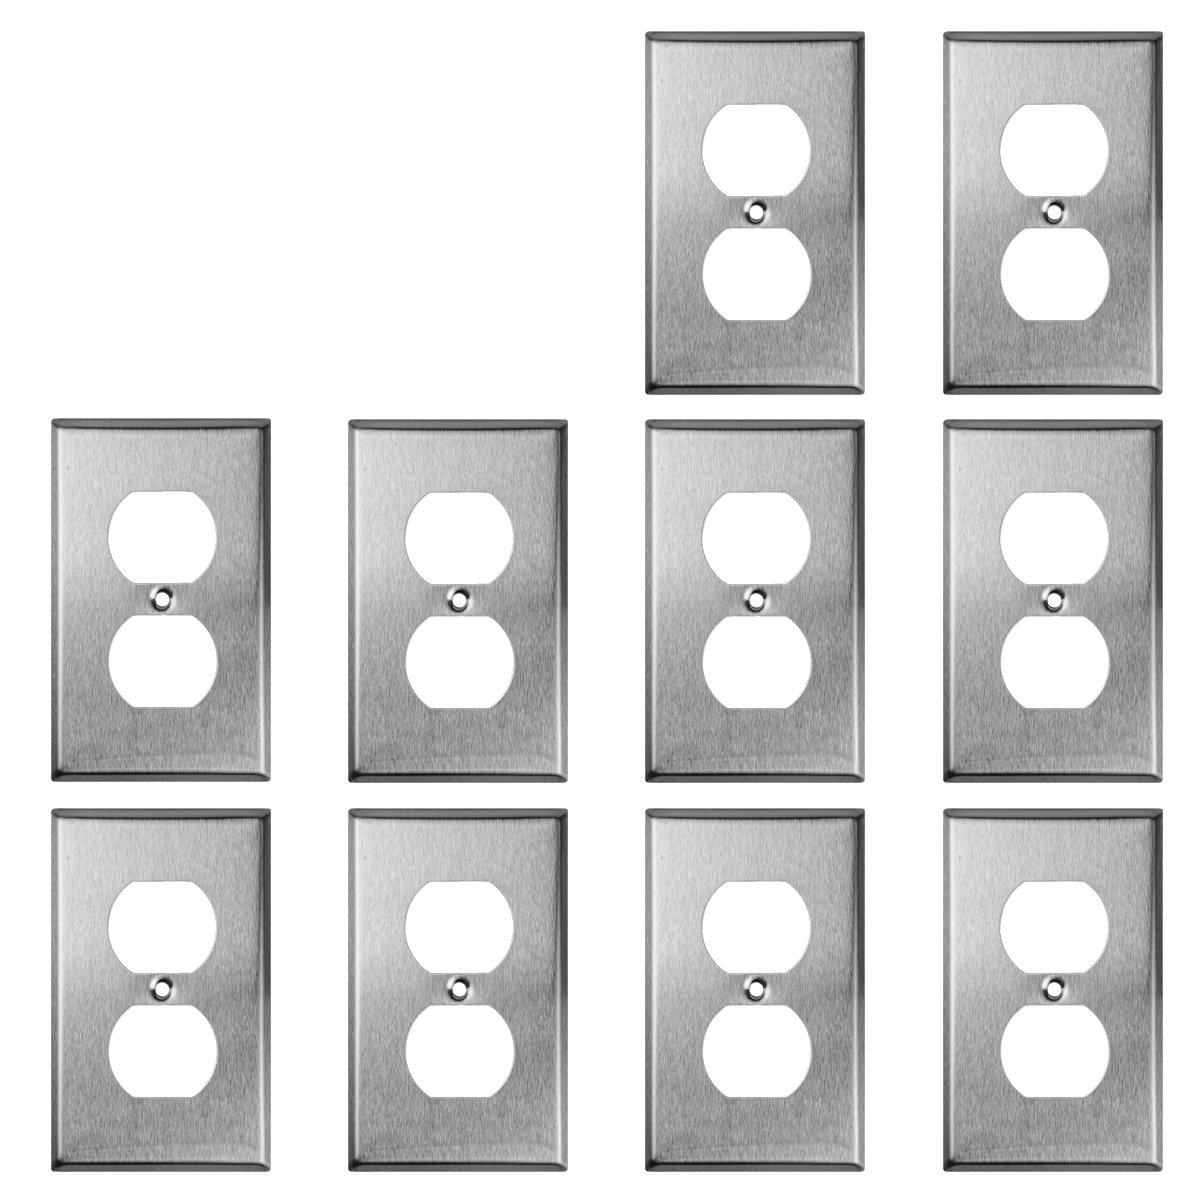 TOPELE 1-Gang Duplex Receptacle Stainless Steel Wall Plate, Cover Plate for Home & Workplace Decor with Screw, Standard Size (Pack of 10)